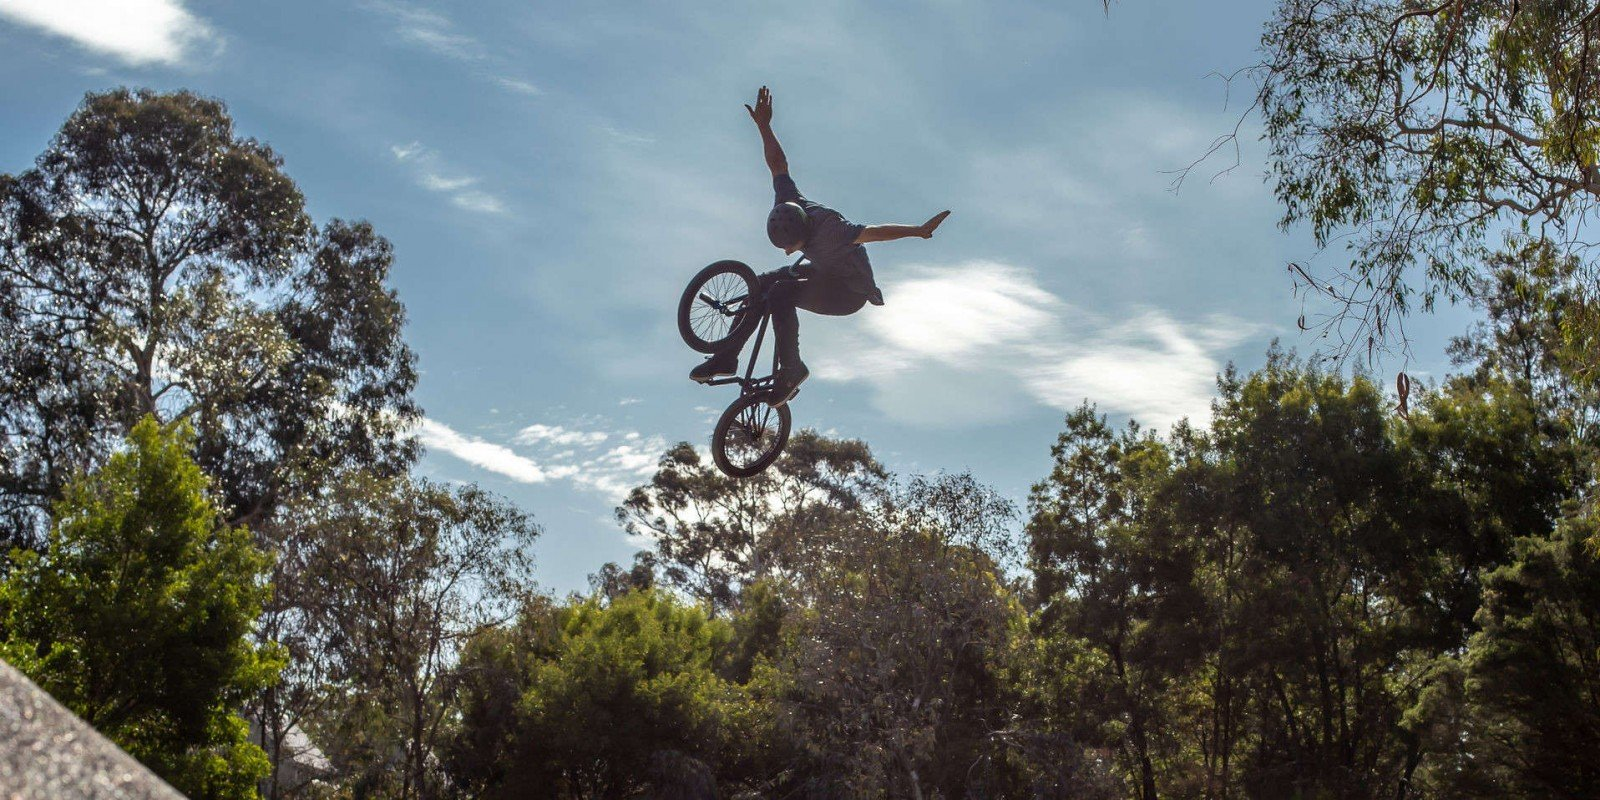 Monster Army goes down under for an Australia BMX edit.